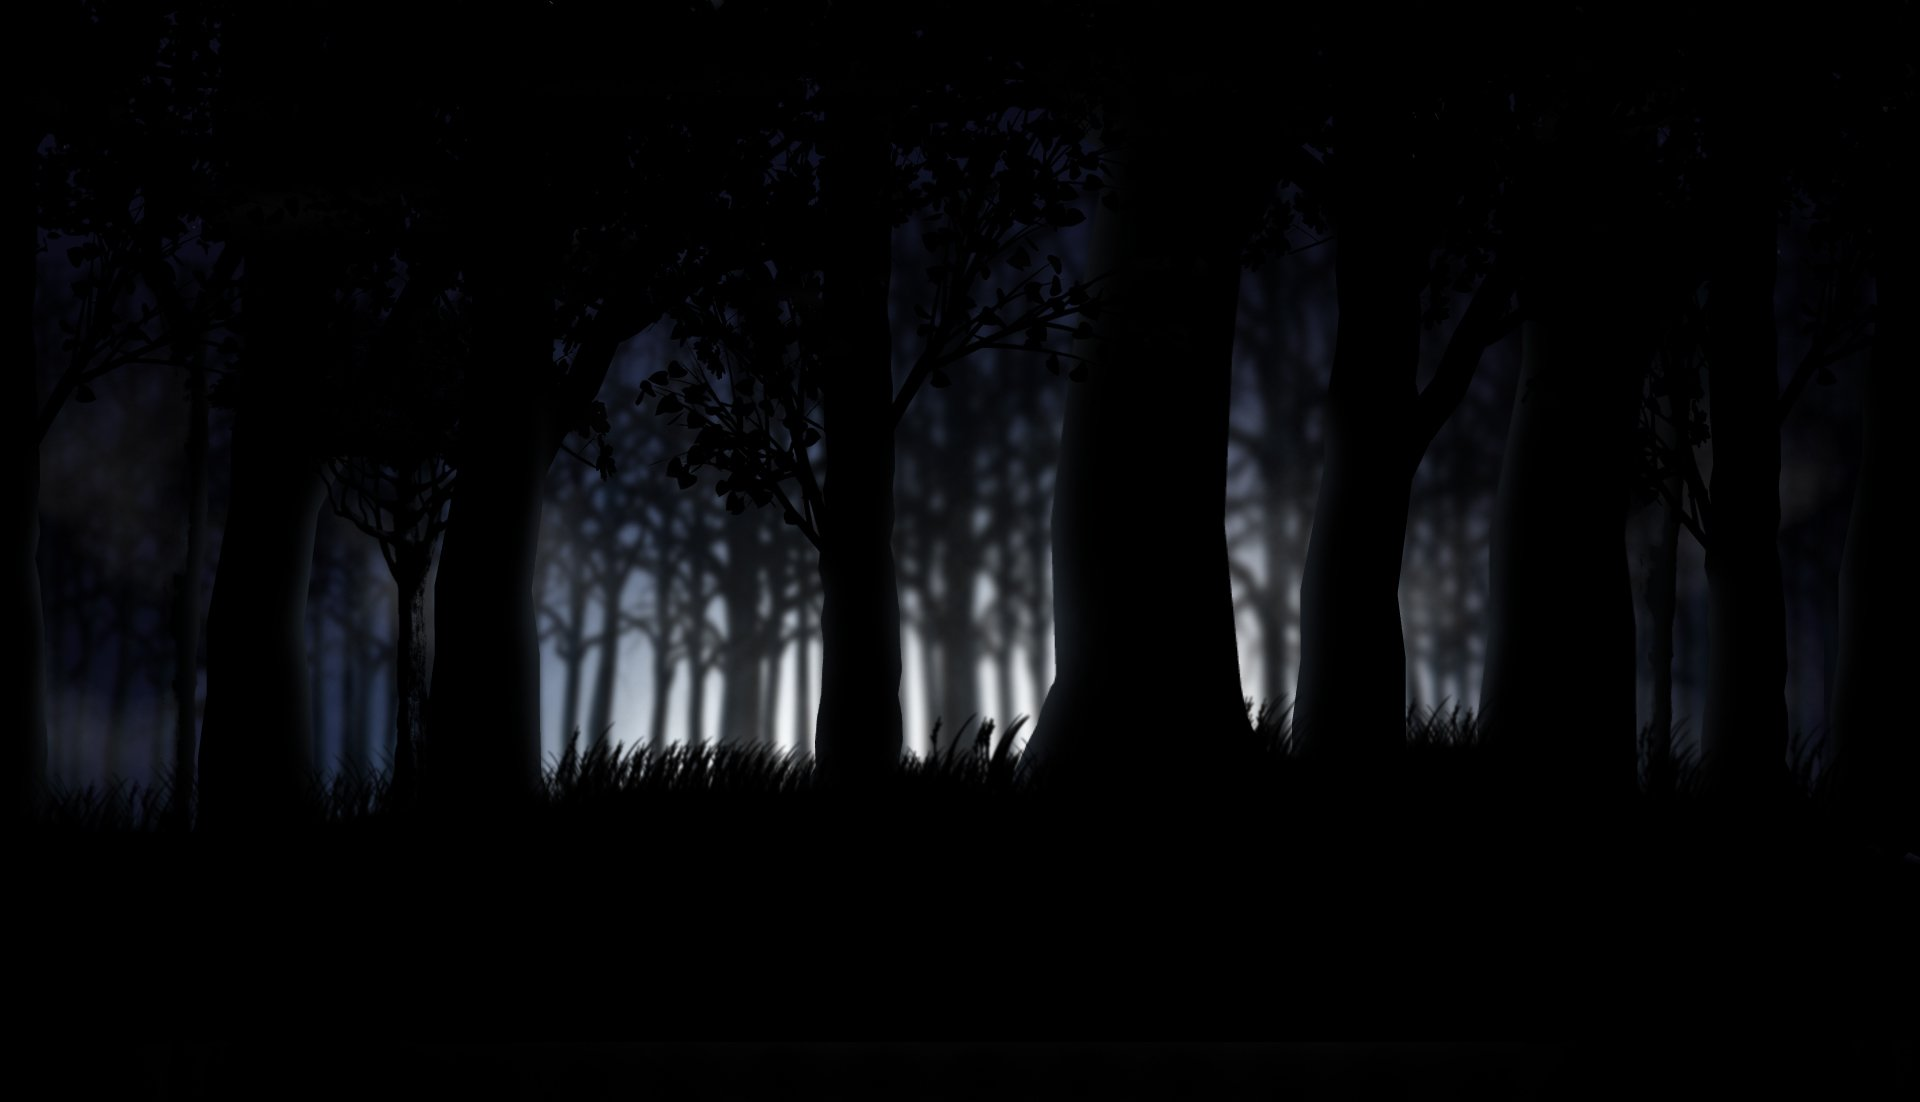 73 Dark Forest Wallpapers On Wallpapersafari